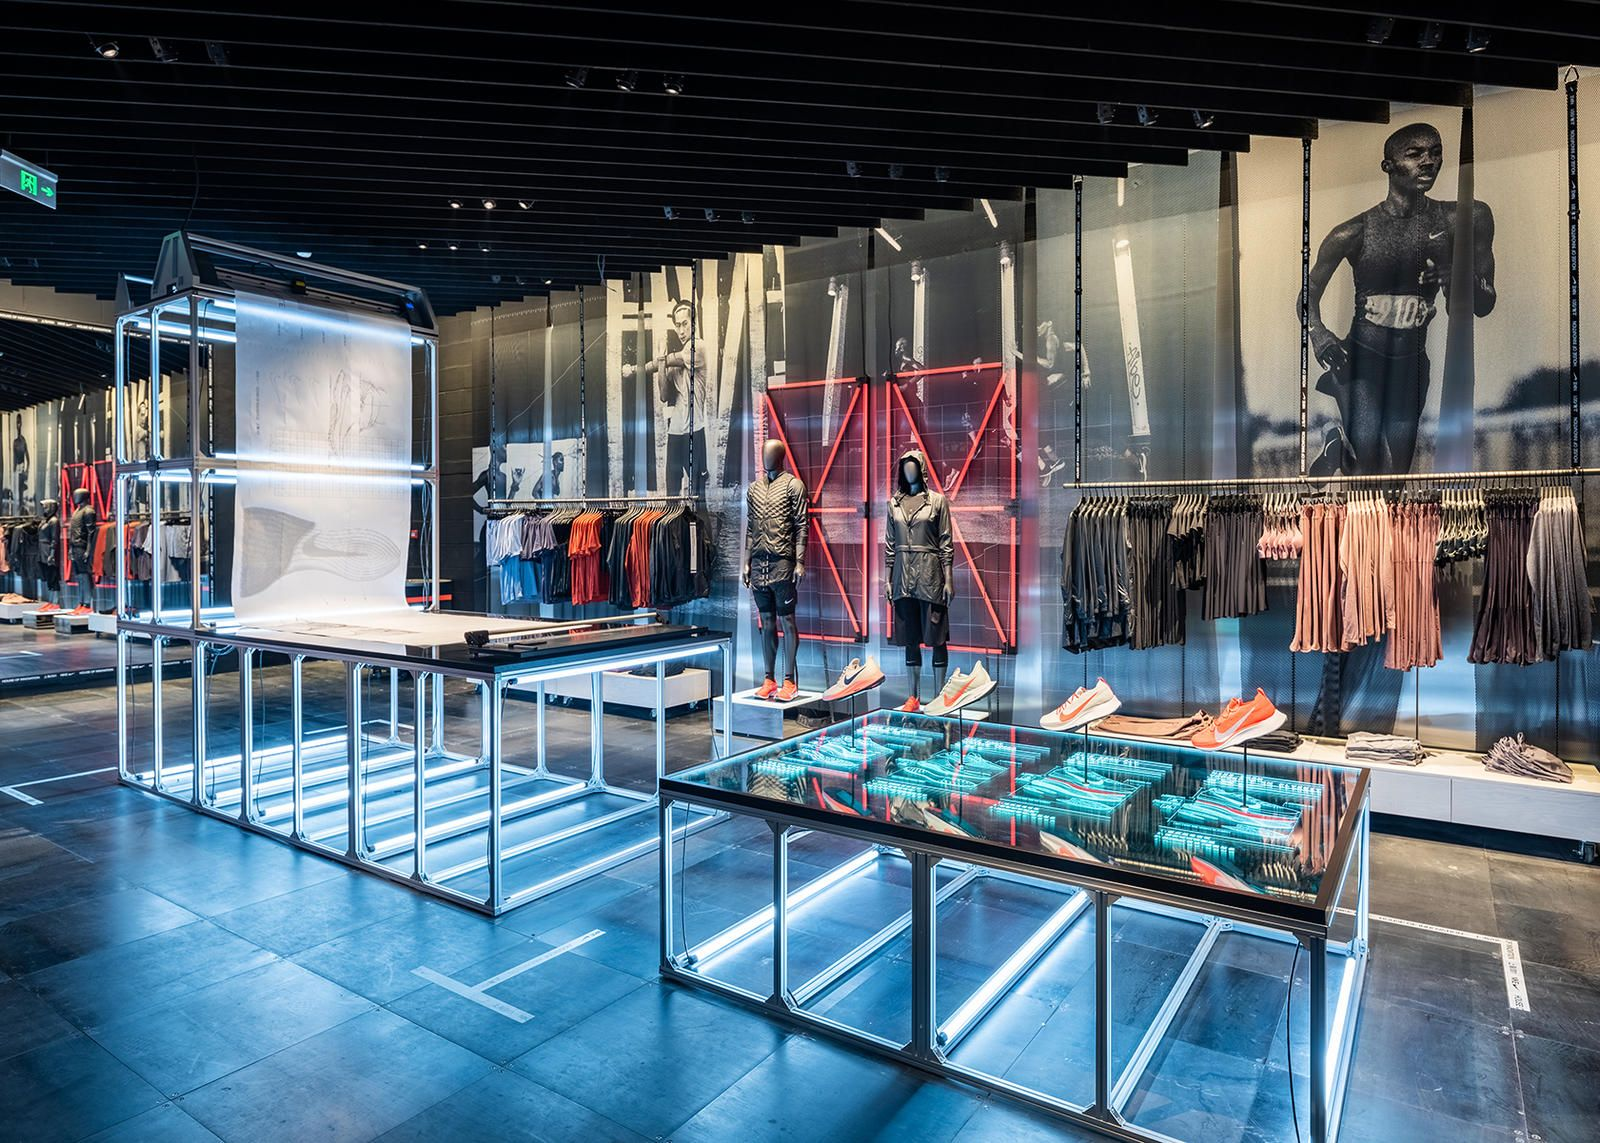 15 Creative Retail Display Examples To Increase Foot Traffic And Sales